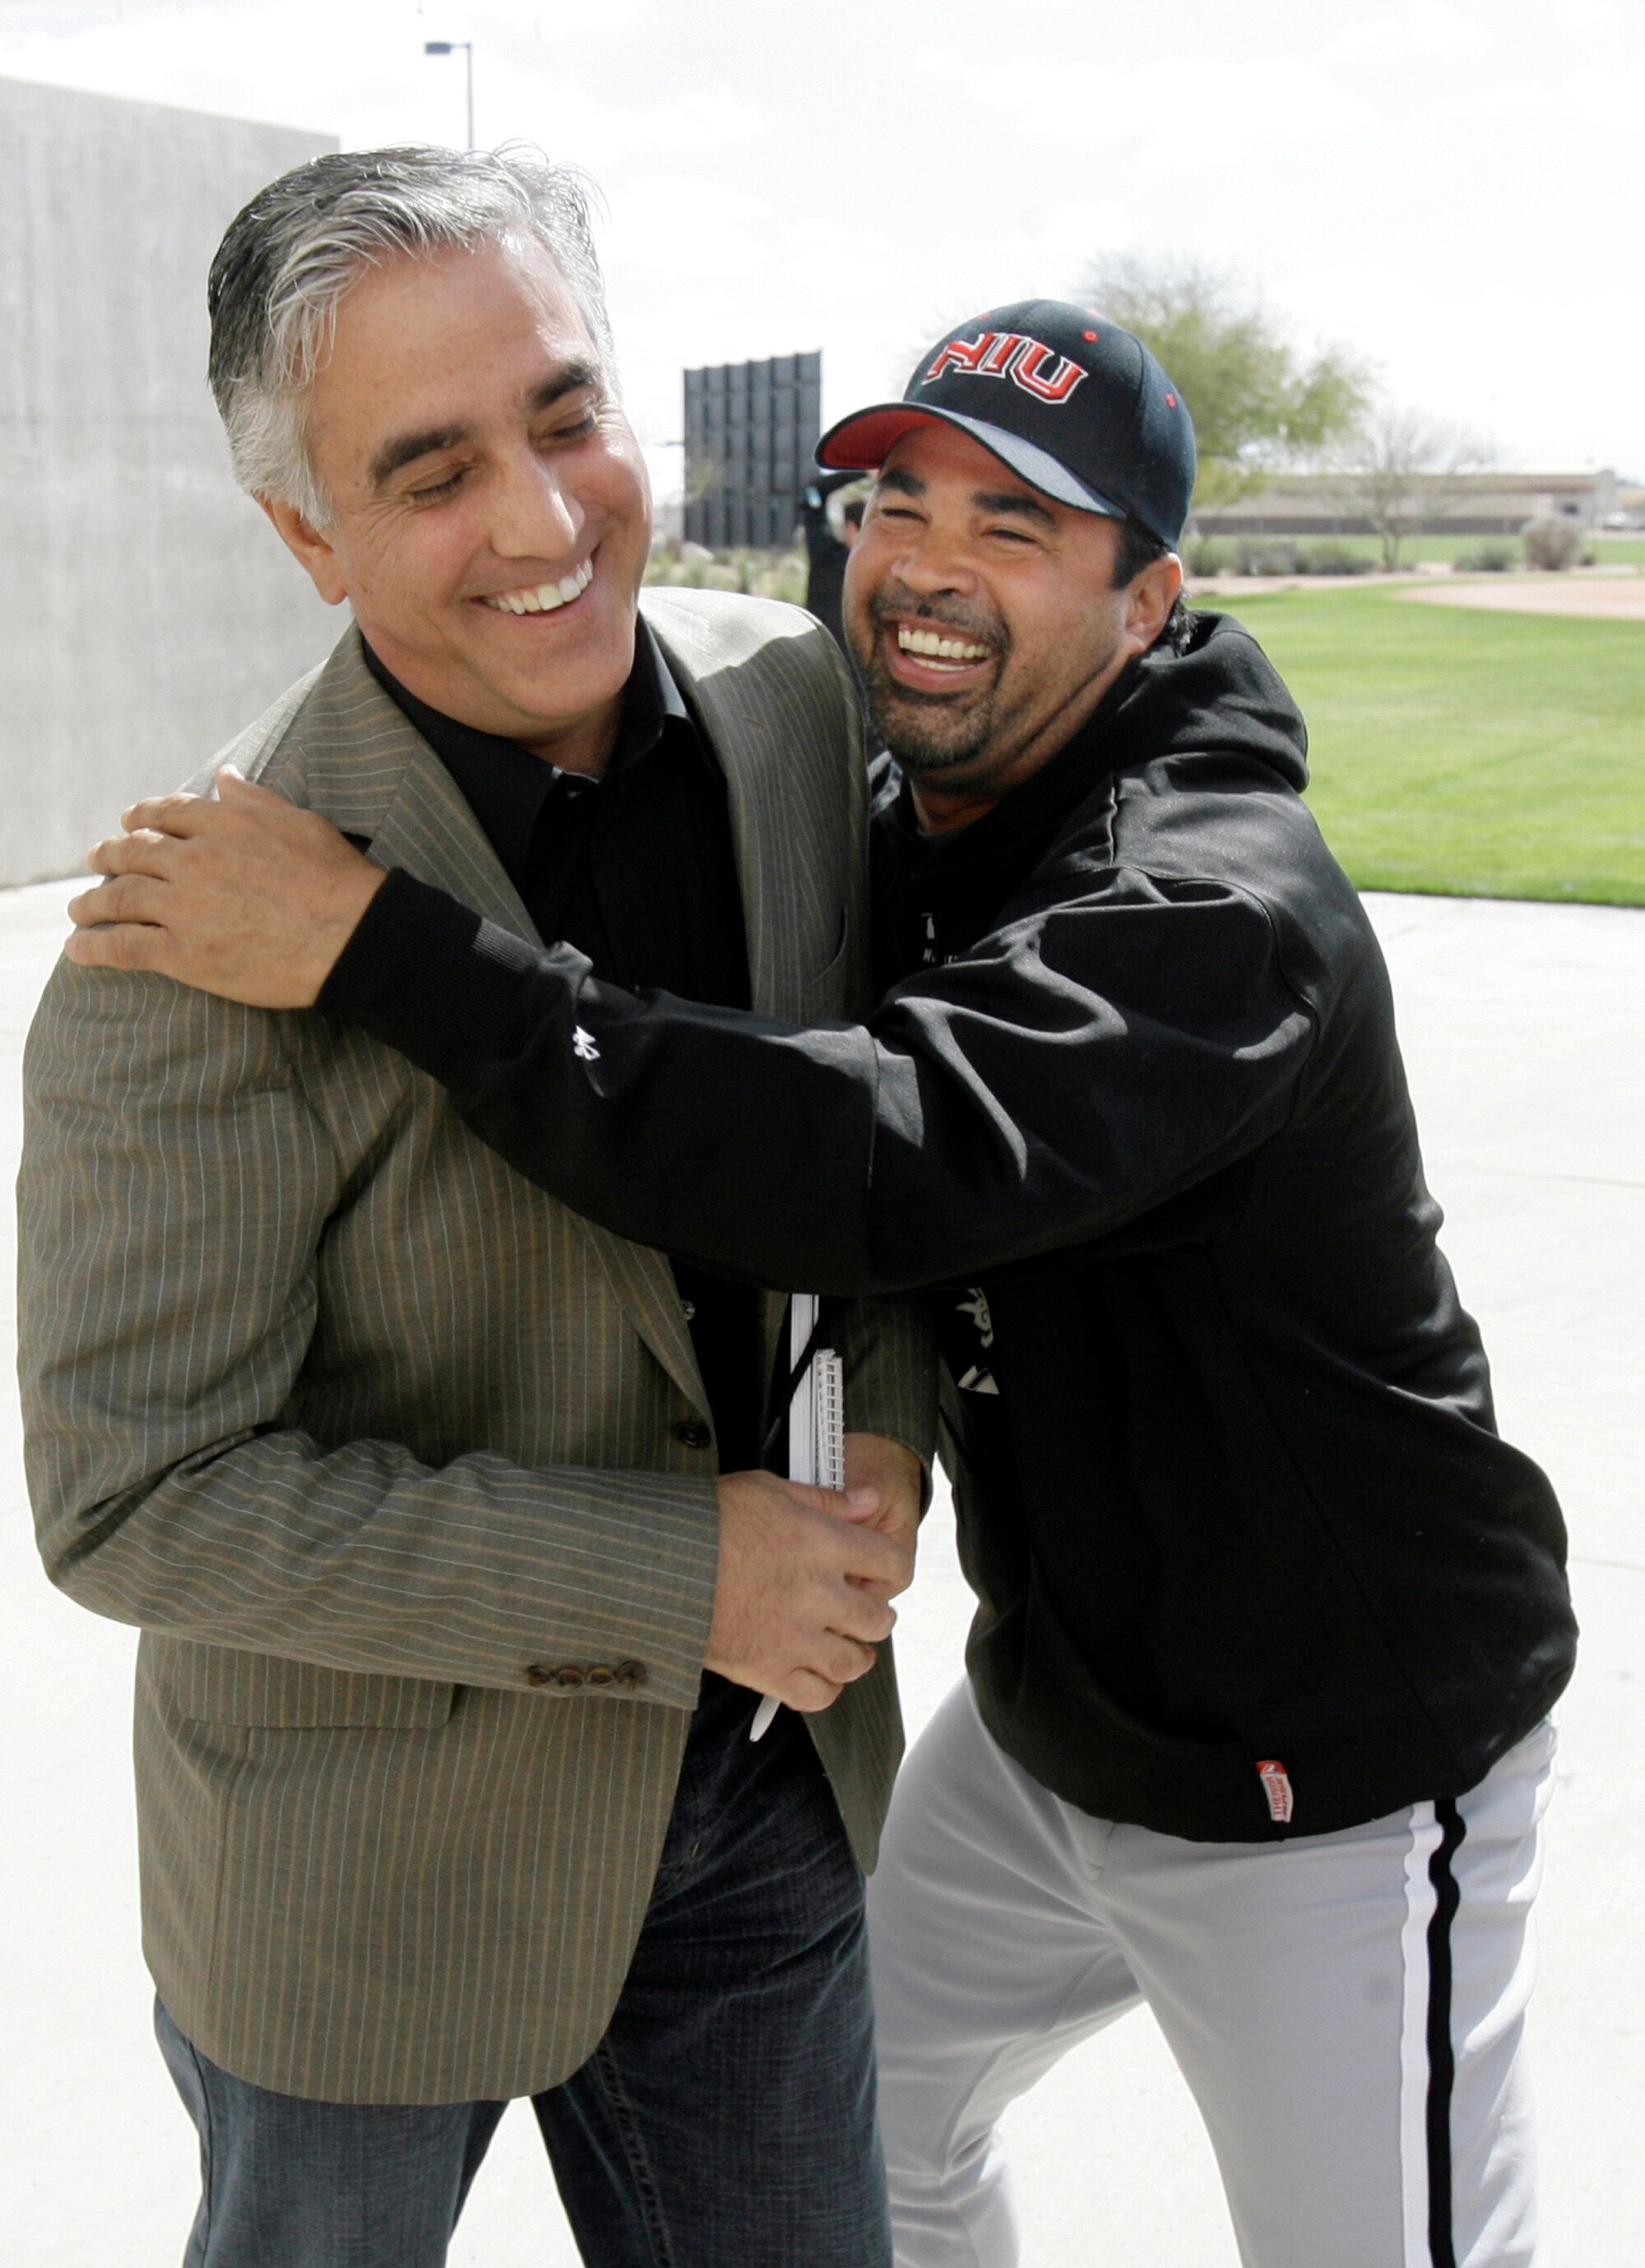 Chicago White Sox' manager Ozzie Guillen, right, jokes with ESPN's Pedro Gomez after a news conference in 2008.